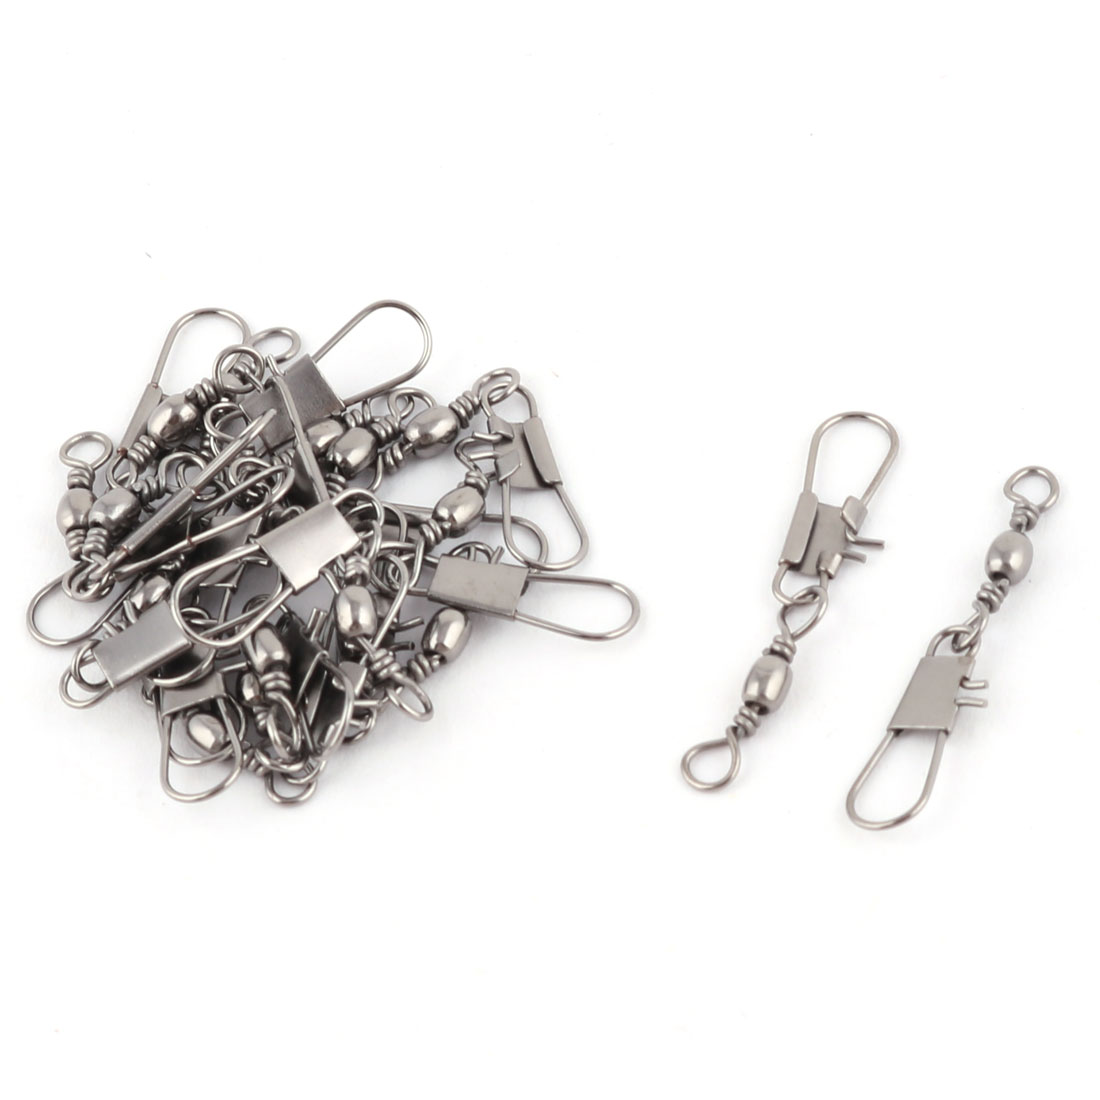 10# Metal Grey Fishing Line to Hook Connector Swivels 20PCS